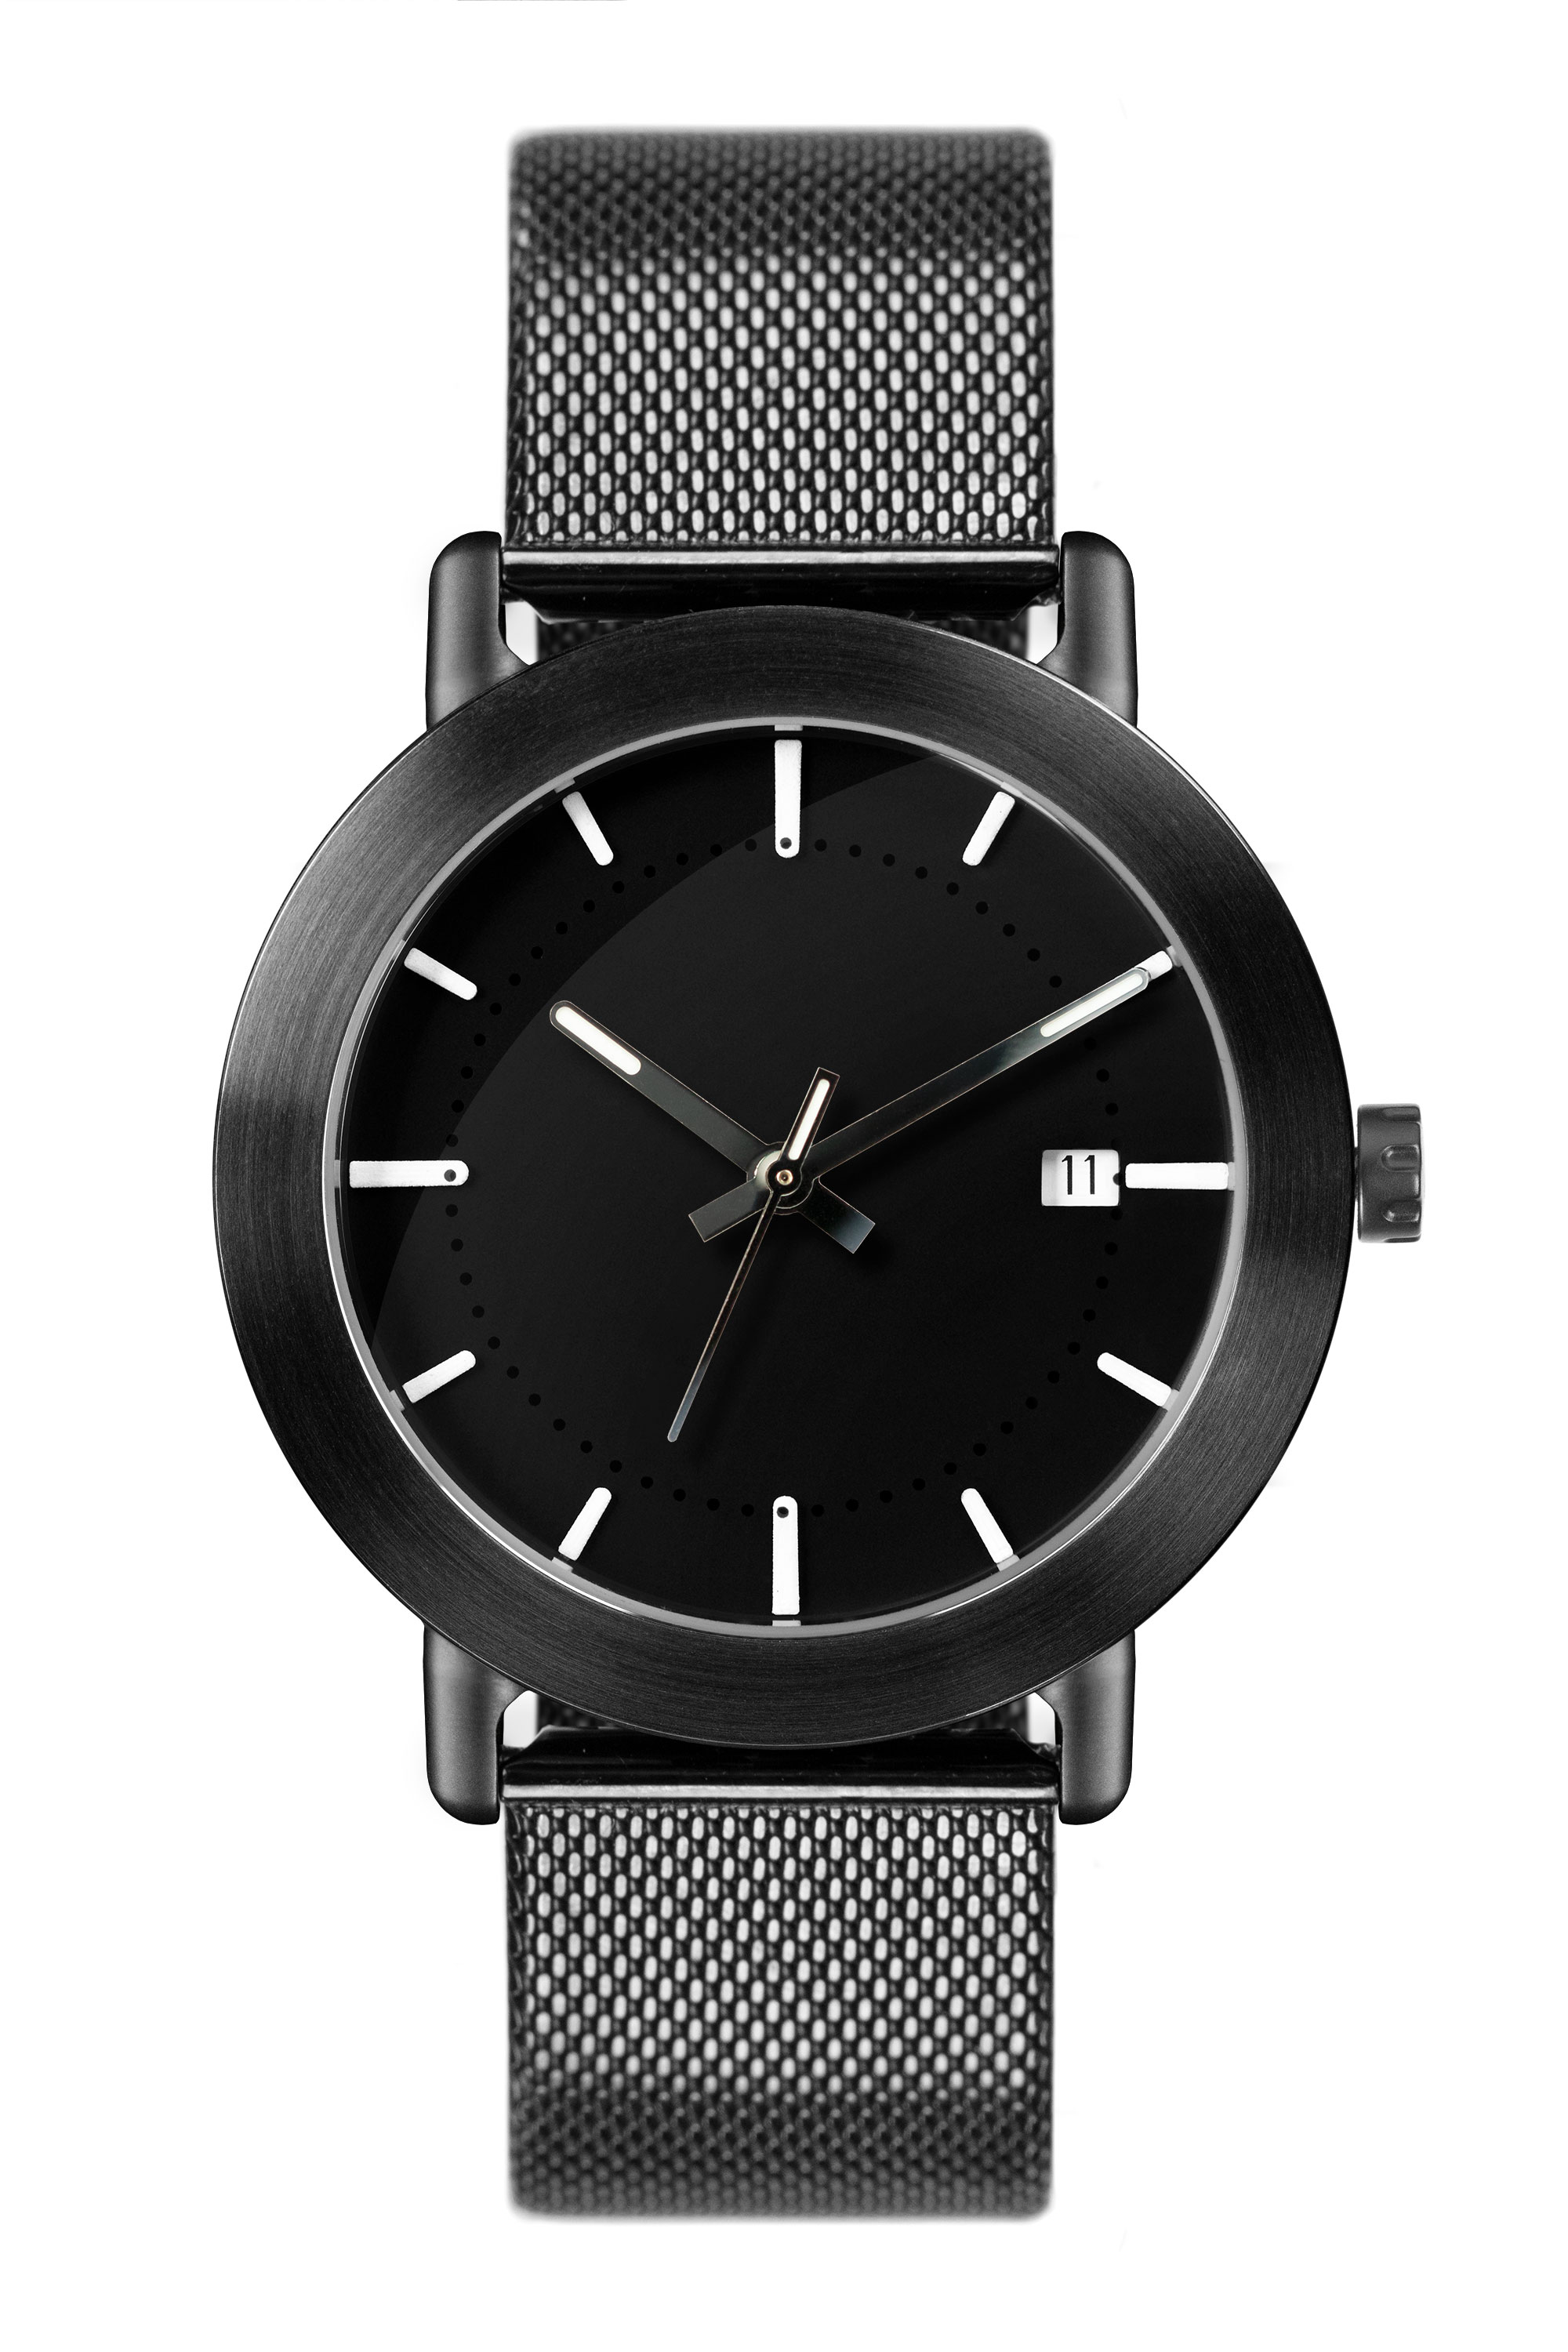 Black PVD coated Stainless Steel